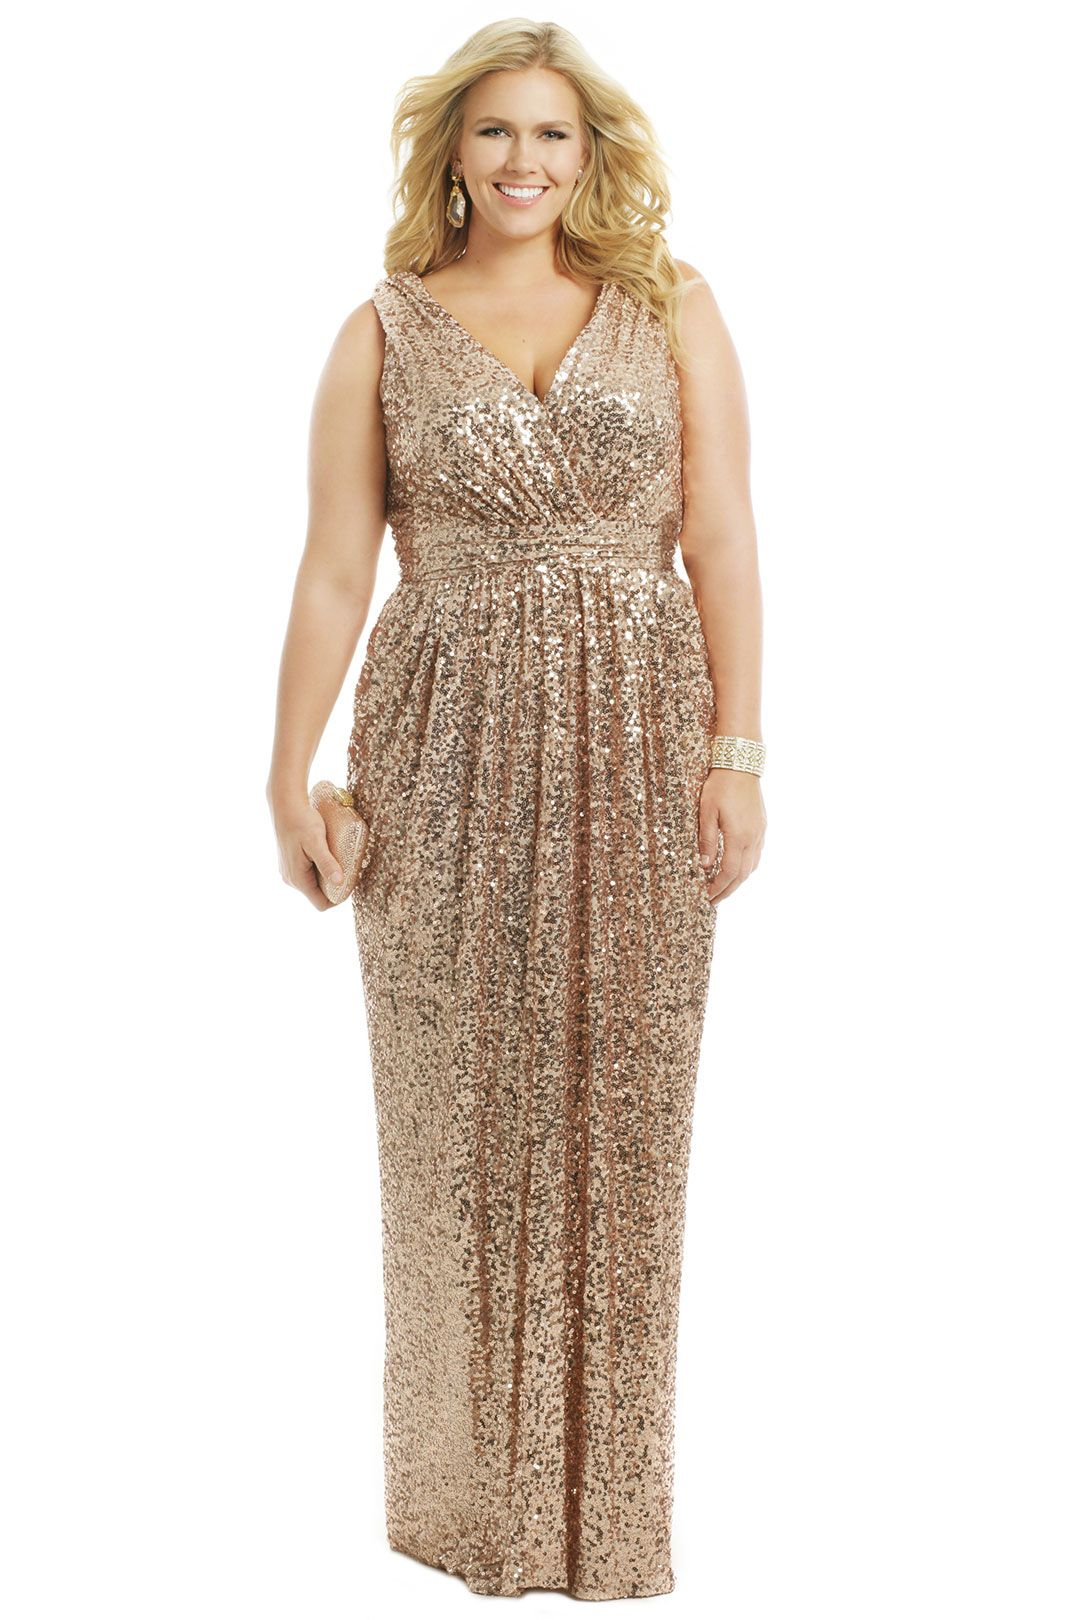 Rolling In The Glitz Gown Mary Lambert Badgley Mischka And Gowns